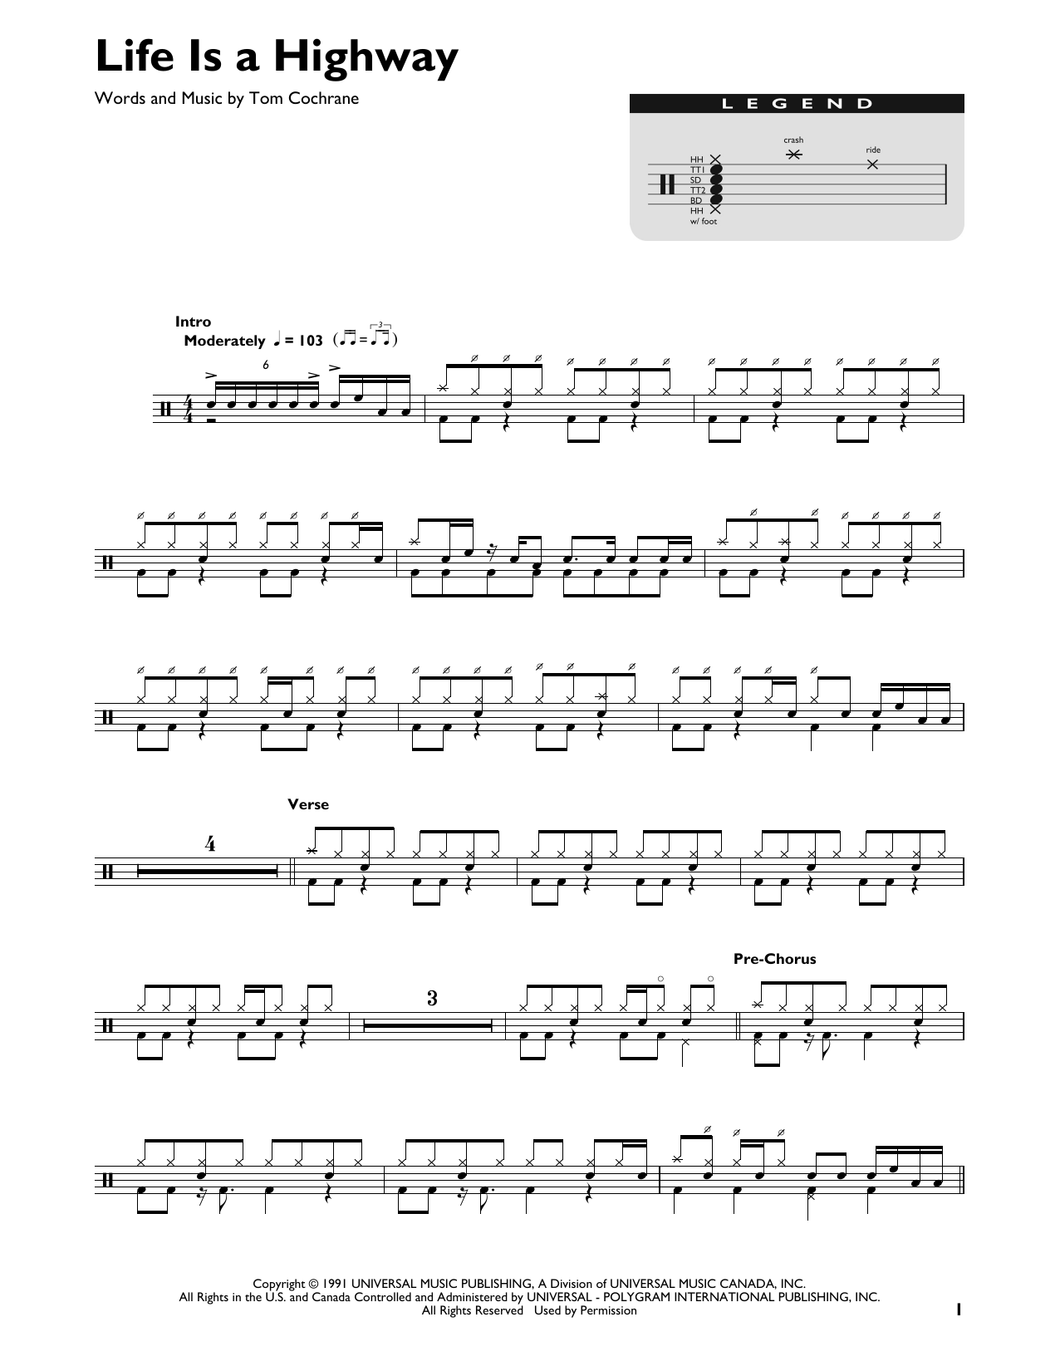 Life Is A Highway - Rascal Flatts - Full Drum Transcription / Drum Sheet Music - SheetMusicDirect DT